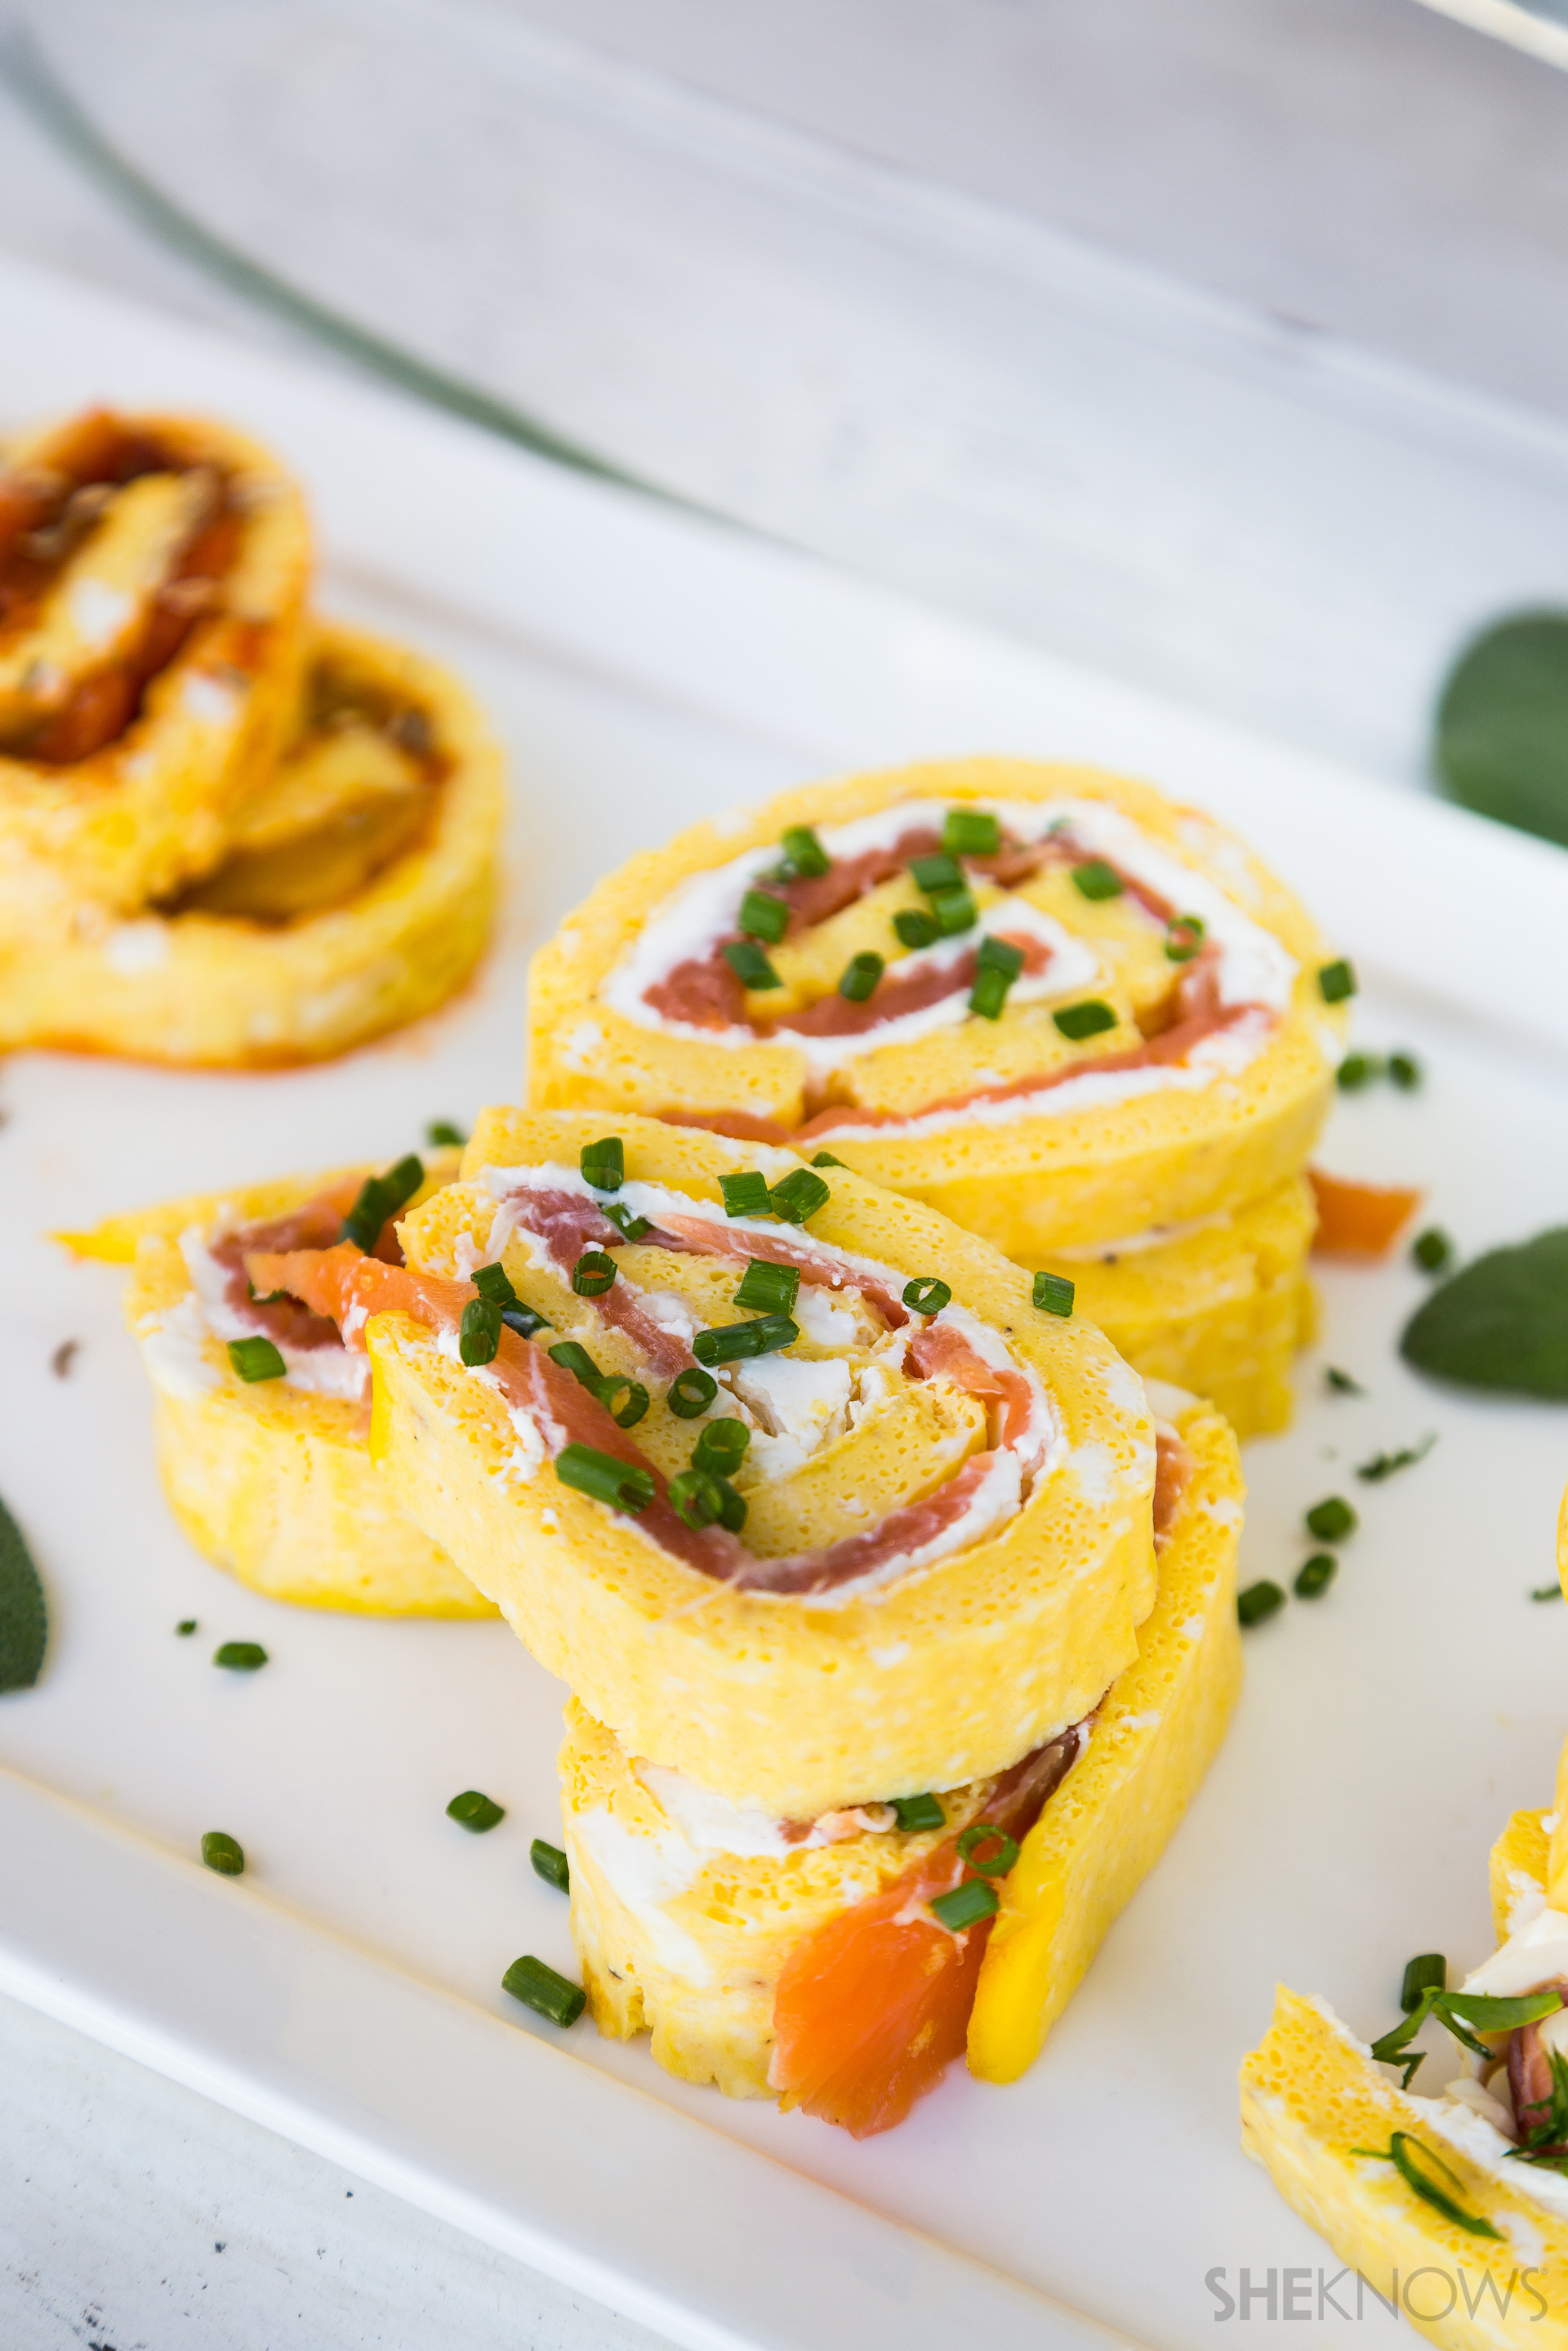 The easier way to make omelets